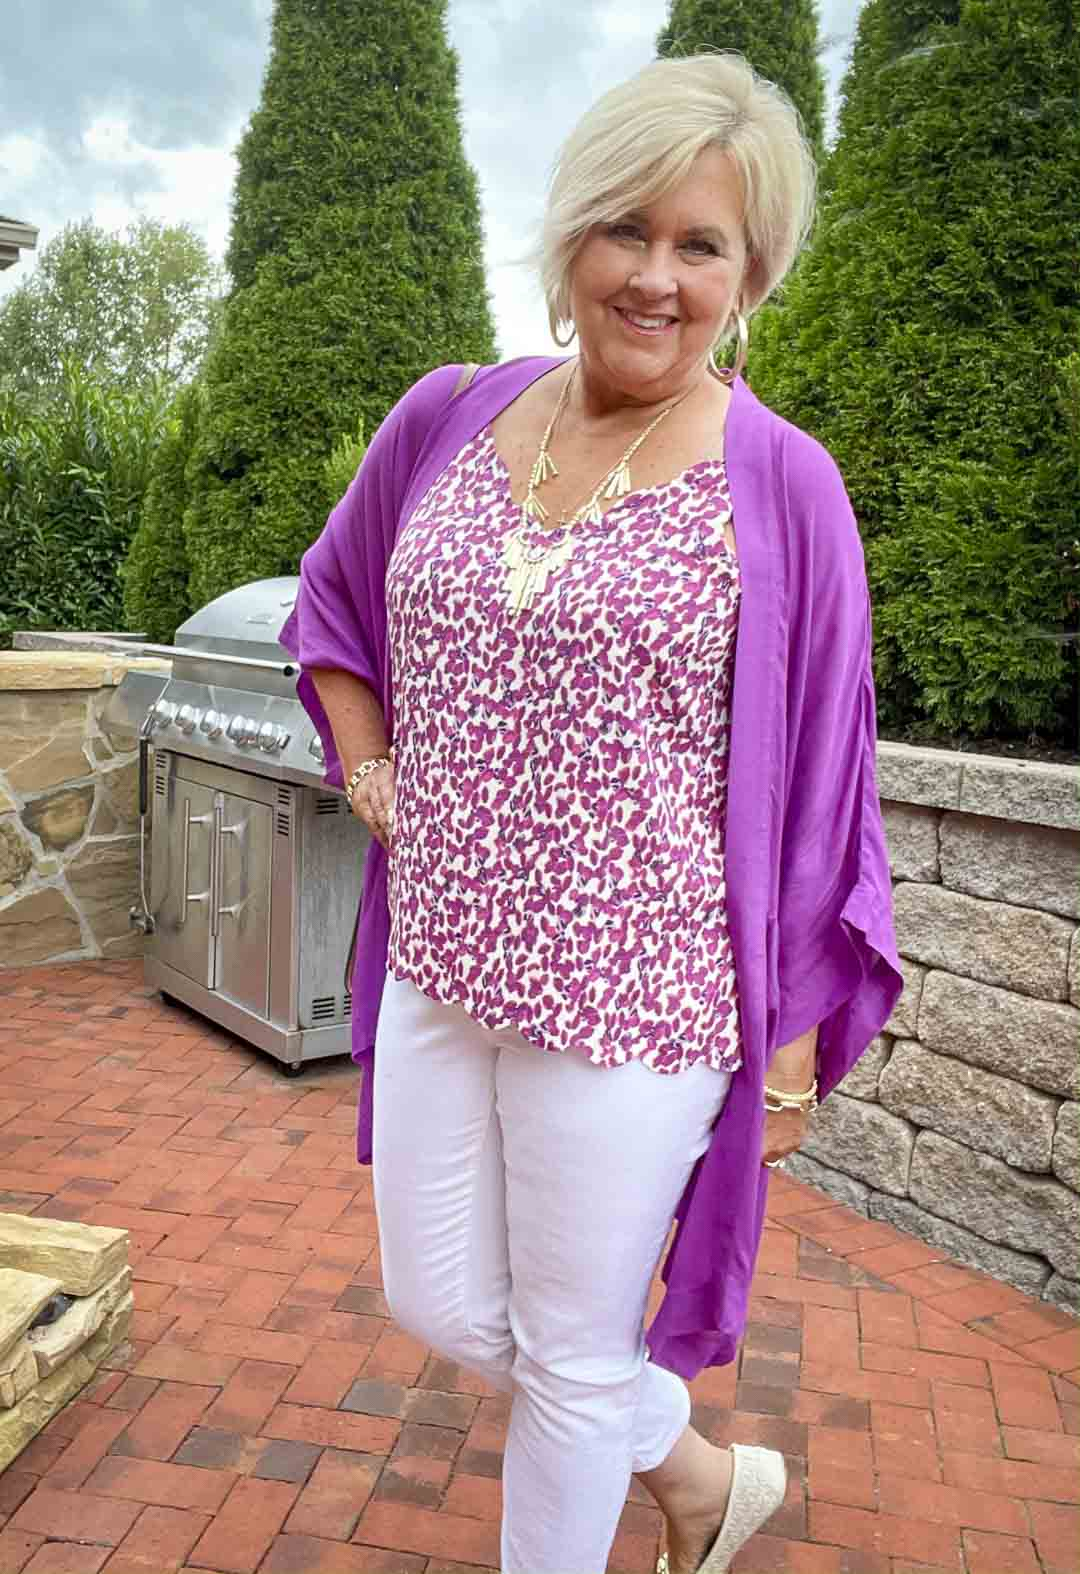 Over 40 fashion blogger, Tania Stephens is wearing a purple cardigan, white jeans, a printed camisole, and gold jewelry